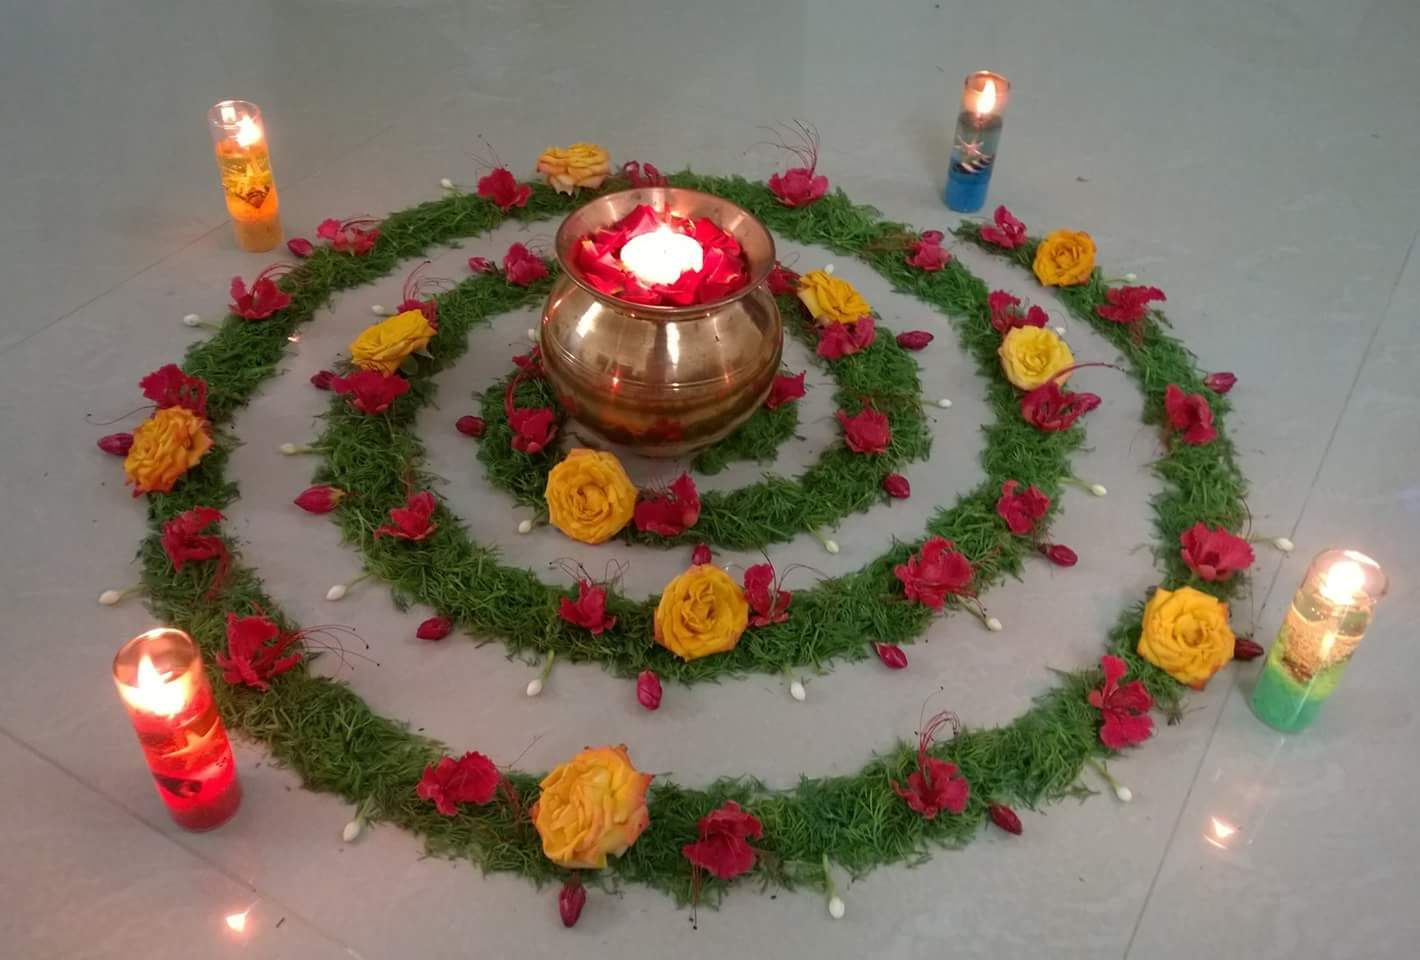 Circular flower design for Diwali with glowing candles